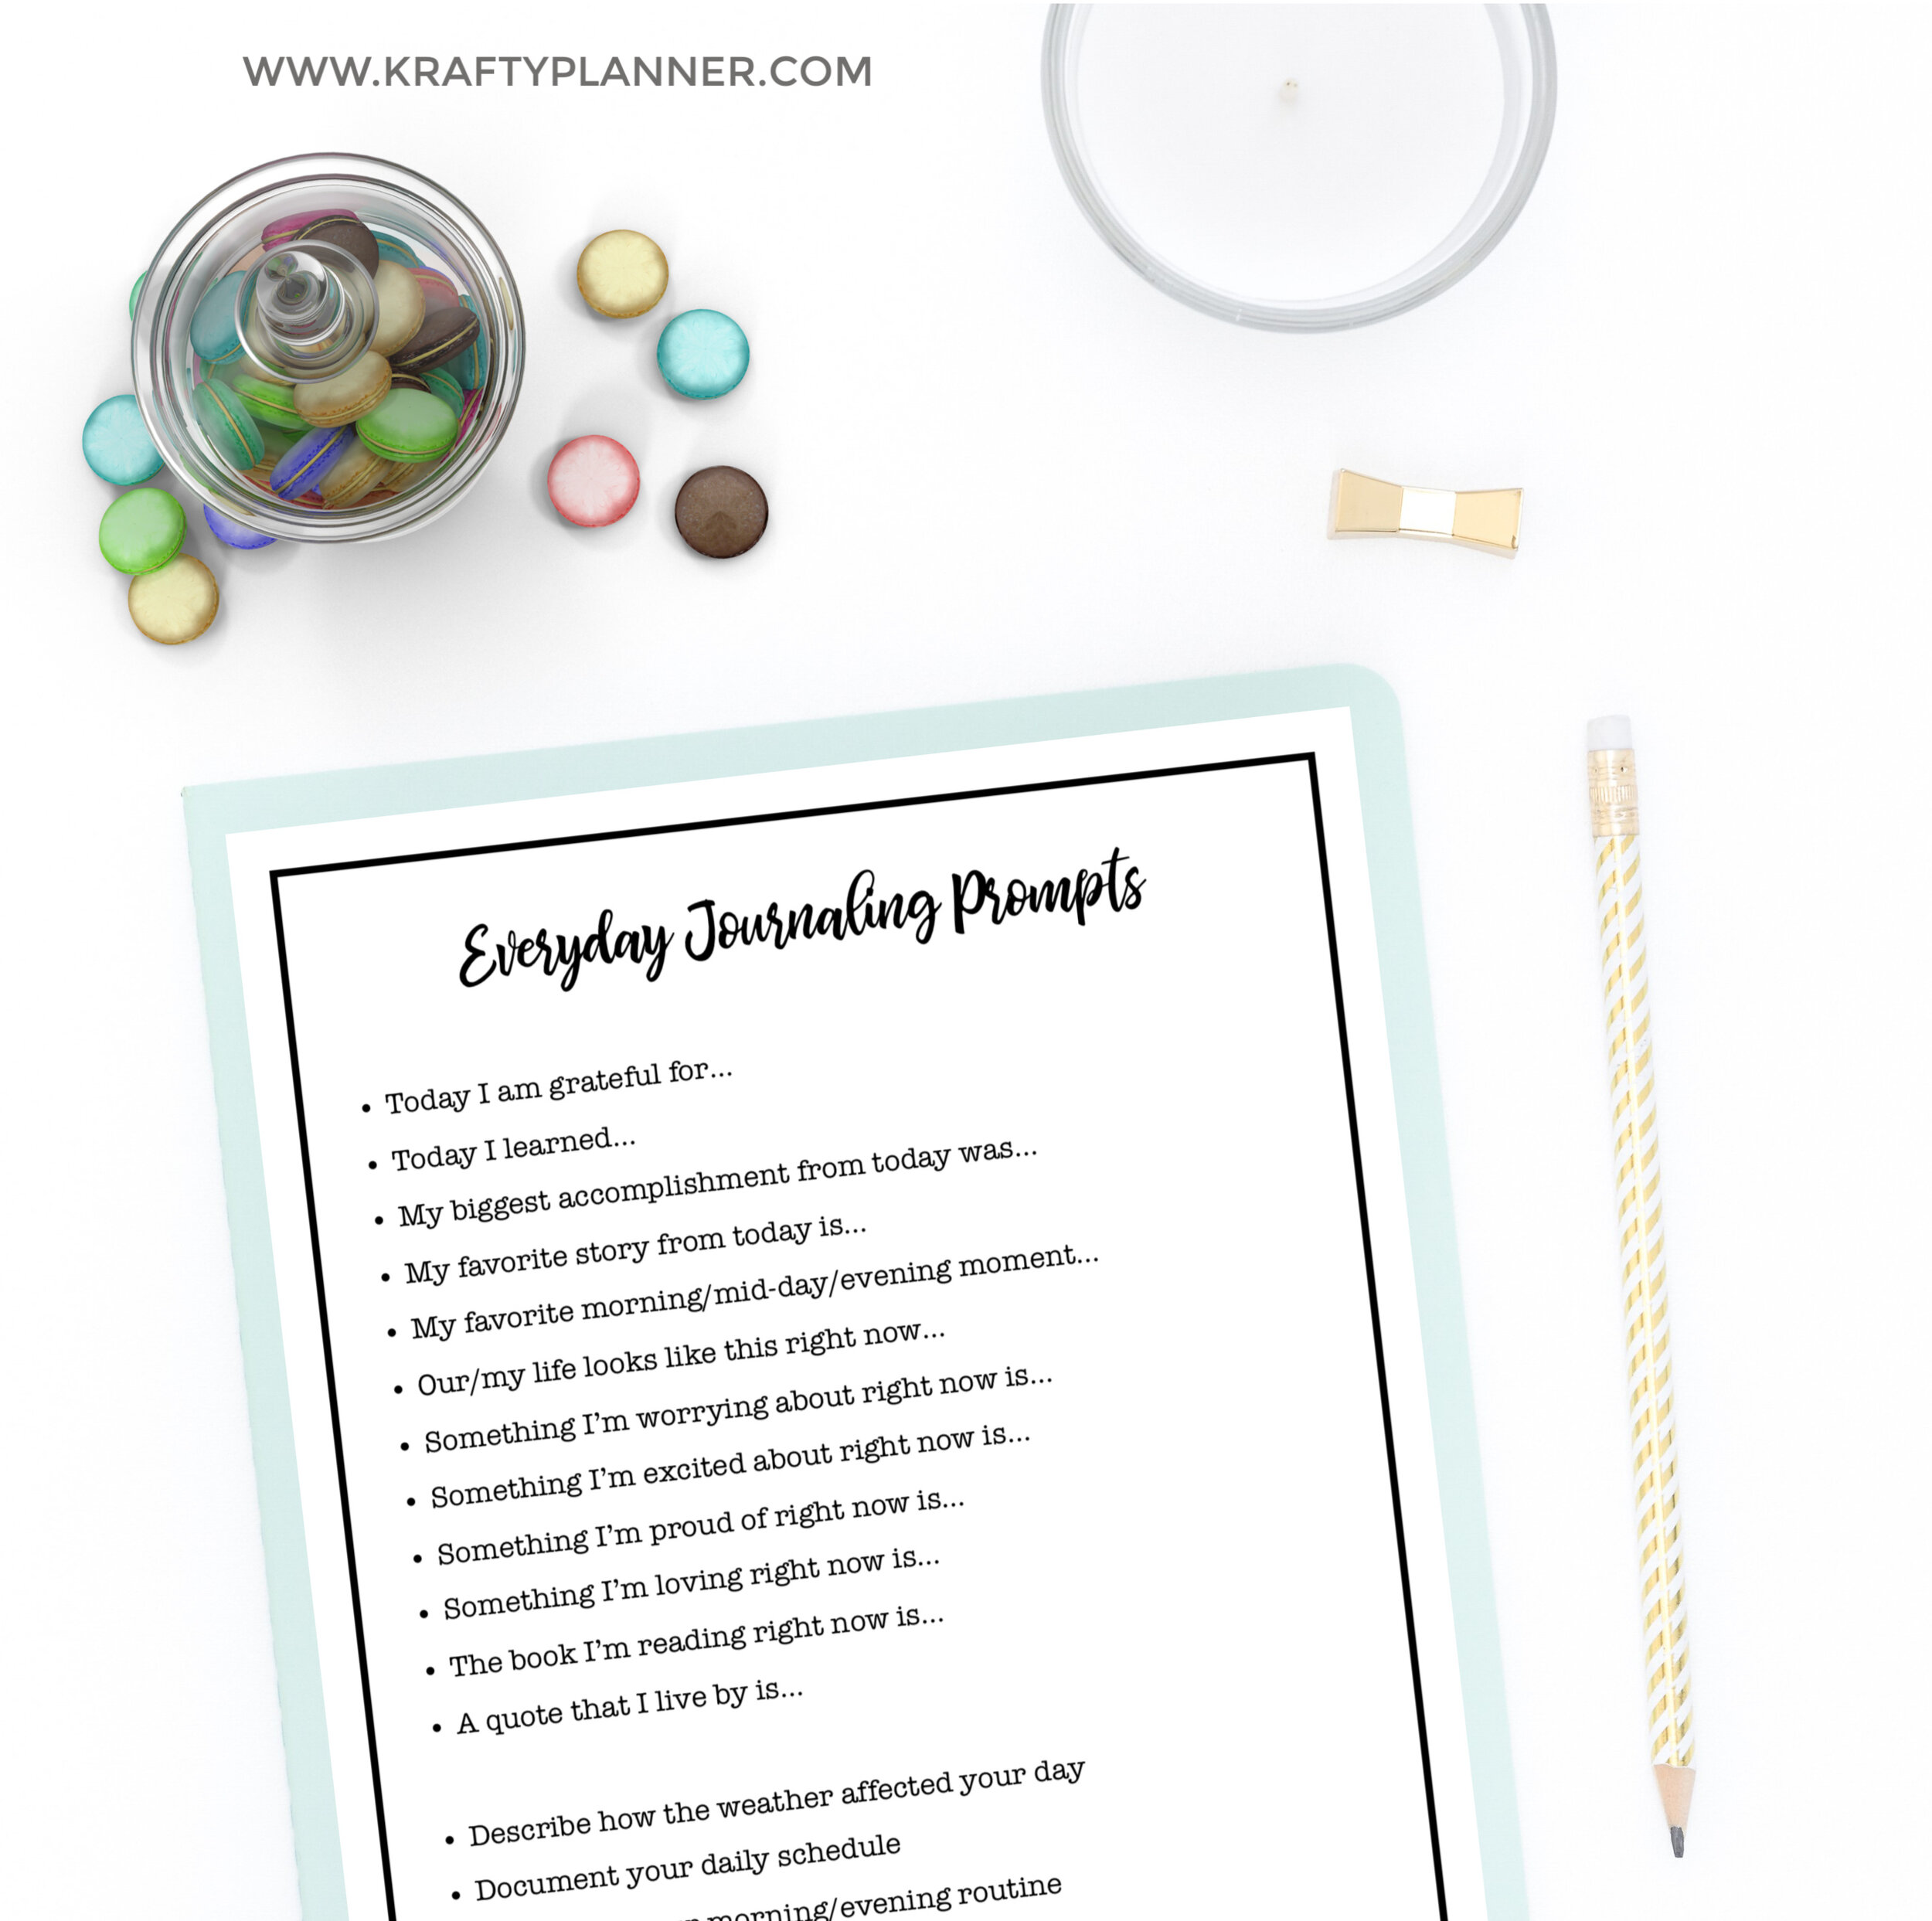 Everyday Journaling Prompts